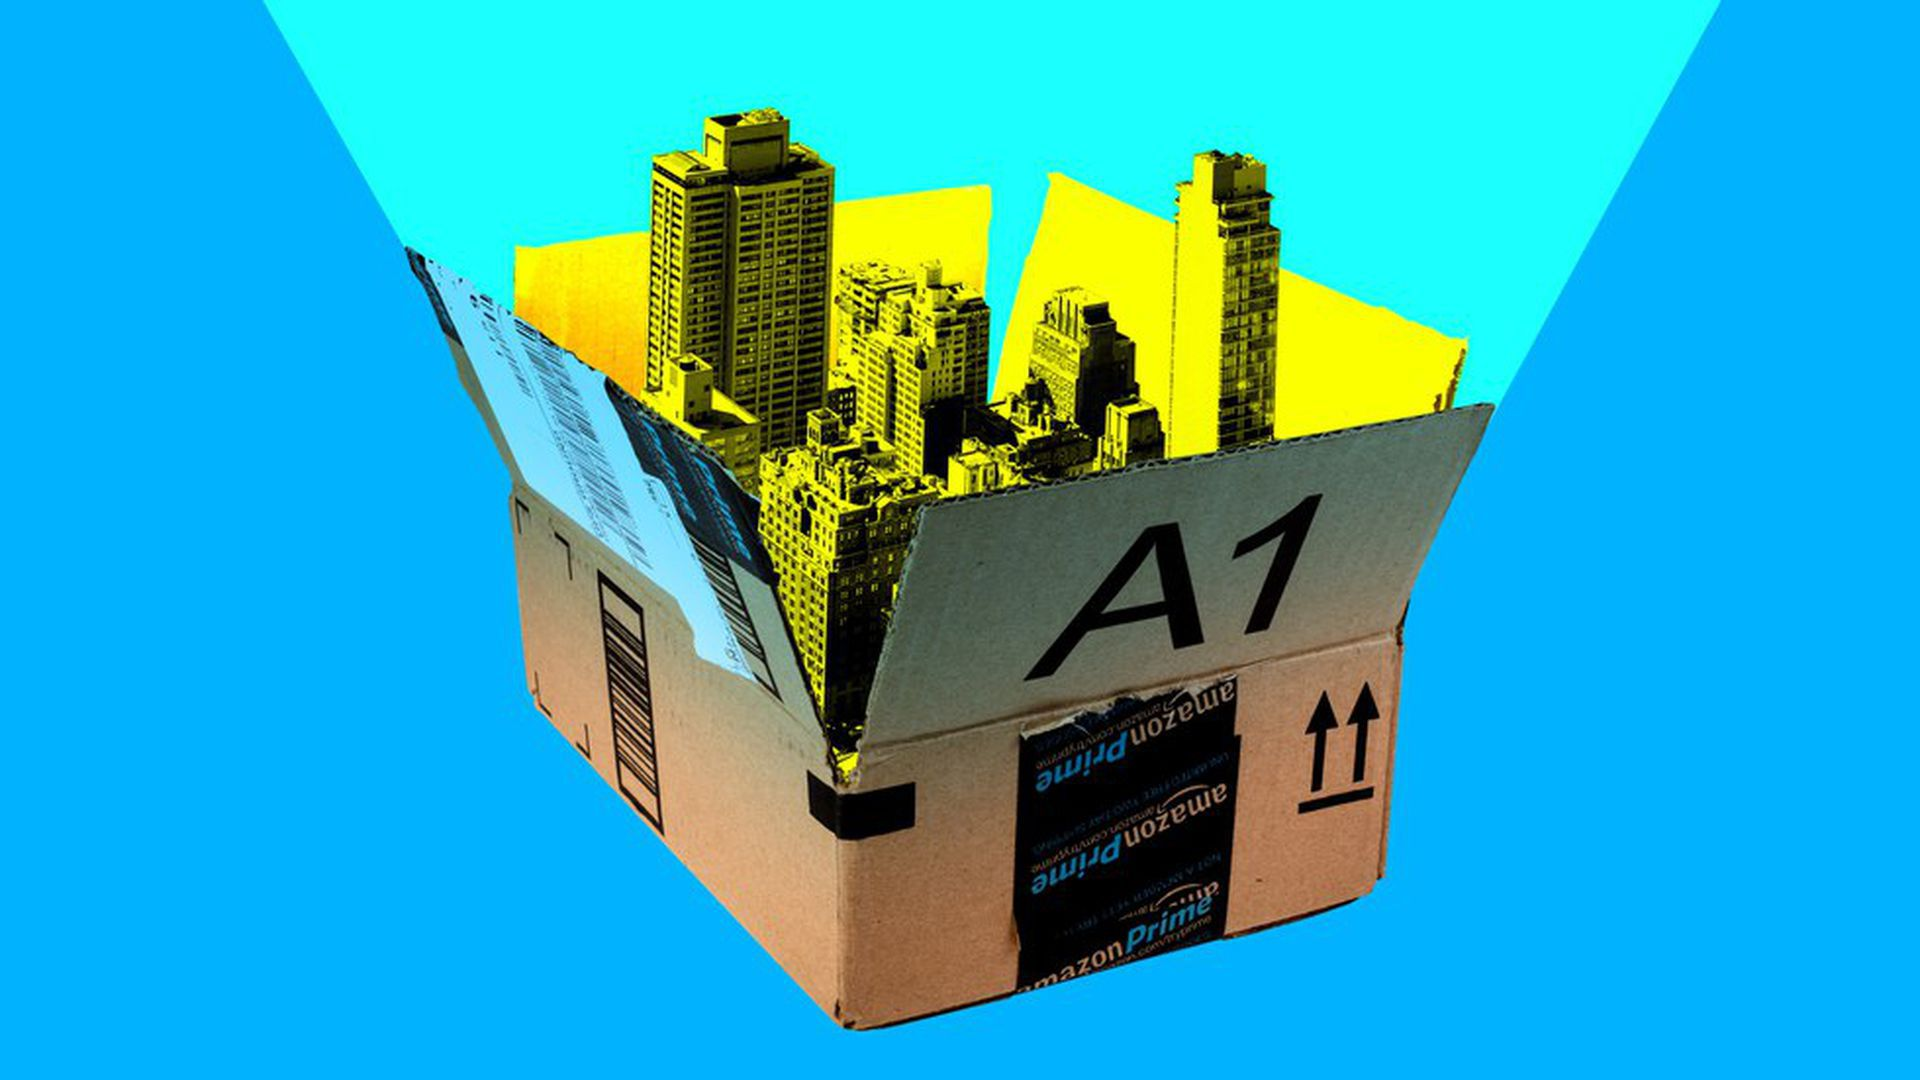 A city pops out of an Amazon box behind a bright blue background